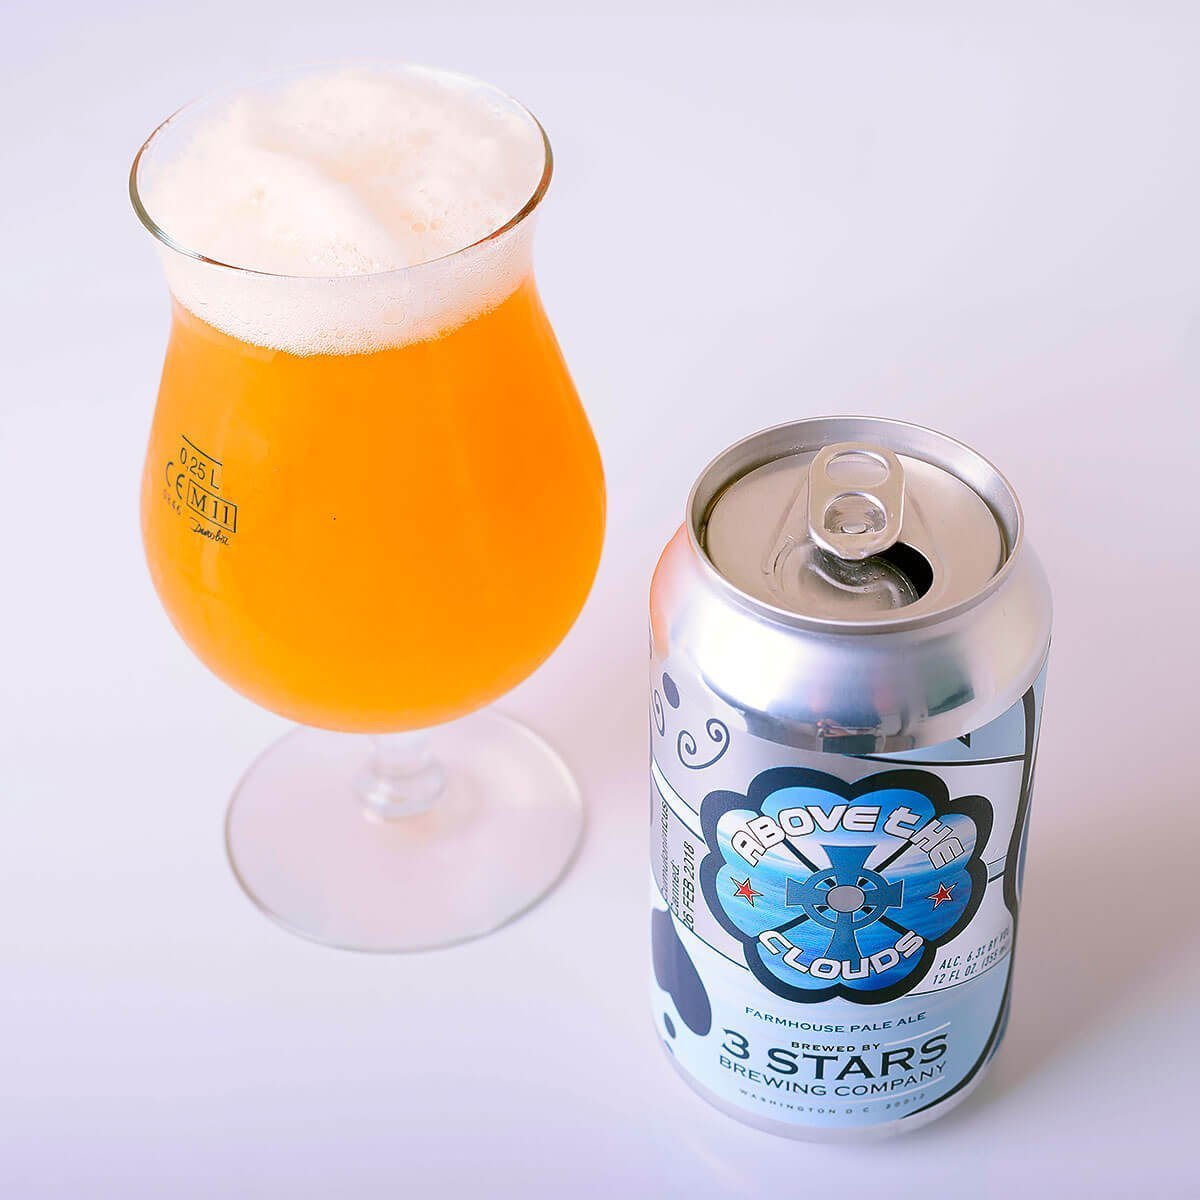 Above The Clouds is a Belgian-style Saison by 3 Stars Brewing Company that blends citrus and pepper with sourdough bread and fruity esters.